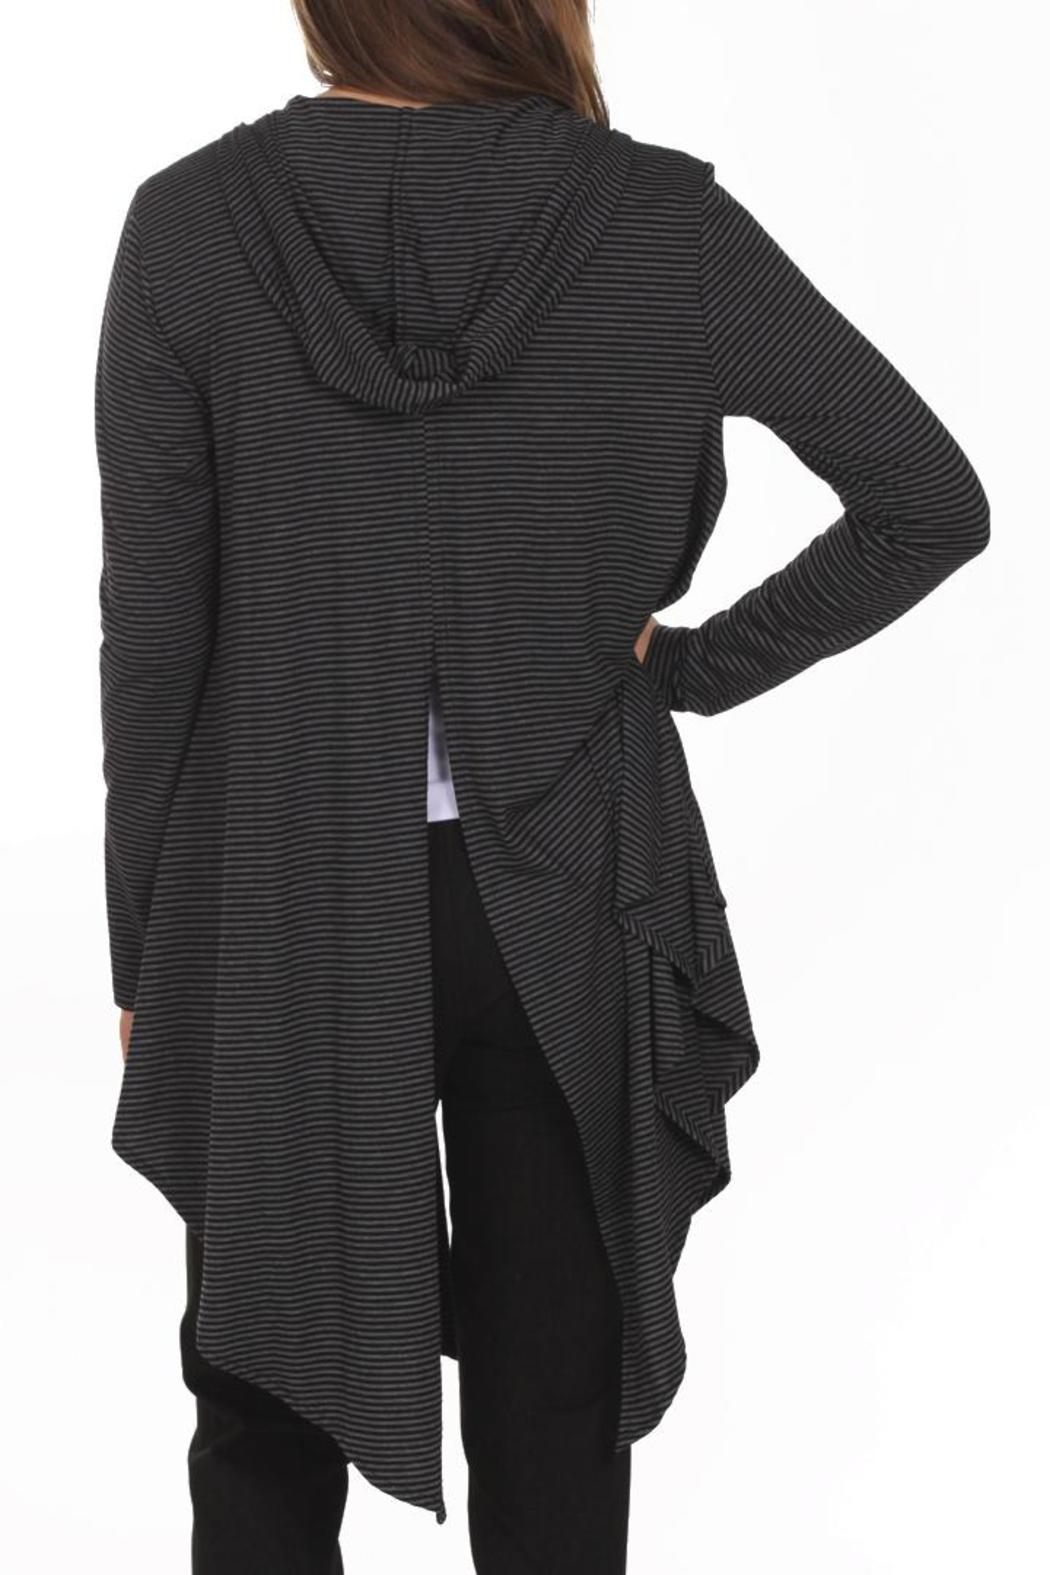 NYAH Striped Hooded Cardigan from Iowa by Shabby & Chic, LLC ...